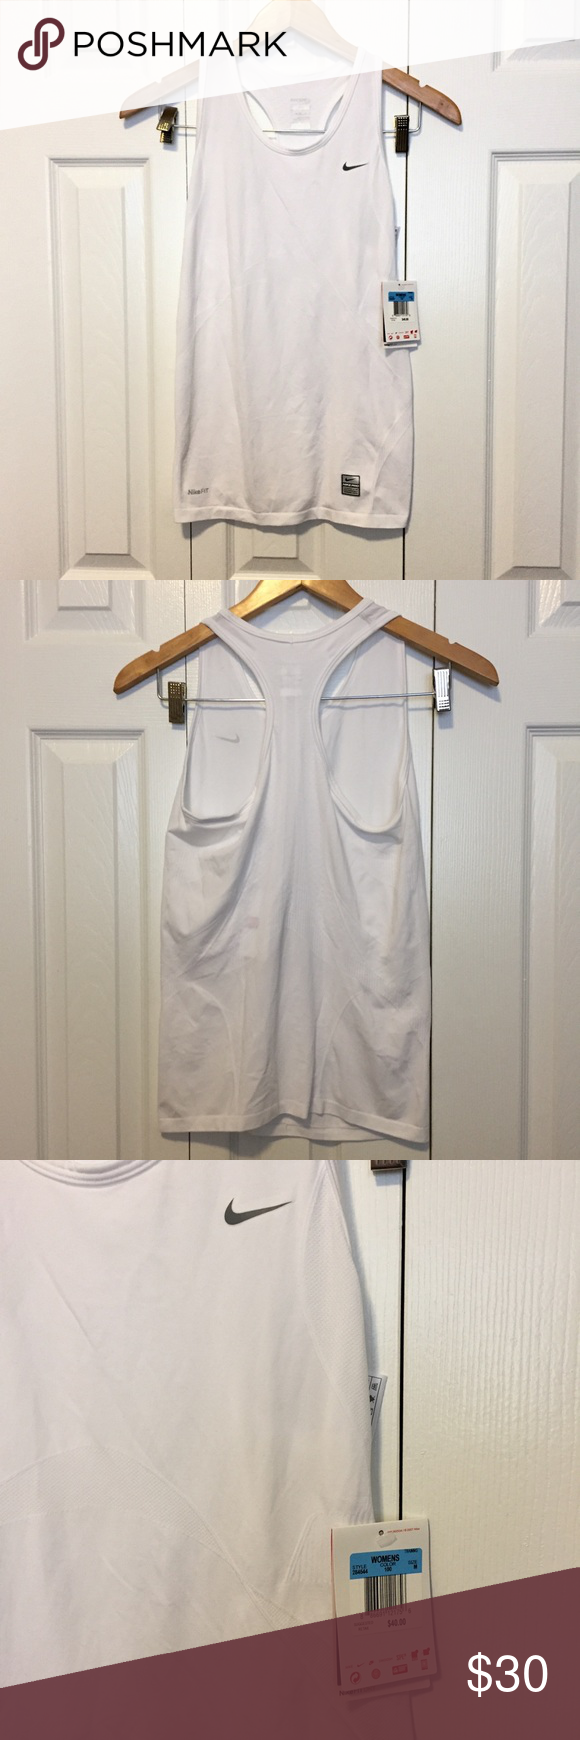 "Nike FitDry White Workout Tank NWT Nike FitDry Workout/Compression Training Tank. Perfect workout top for any activity. Sweat-wicking capabilities. Fits true to size with stretch. Appx: 32"" bust, 25.5"" length. NWT-never worn, excellent condition. Nike Tops Tank Tops"